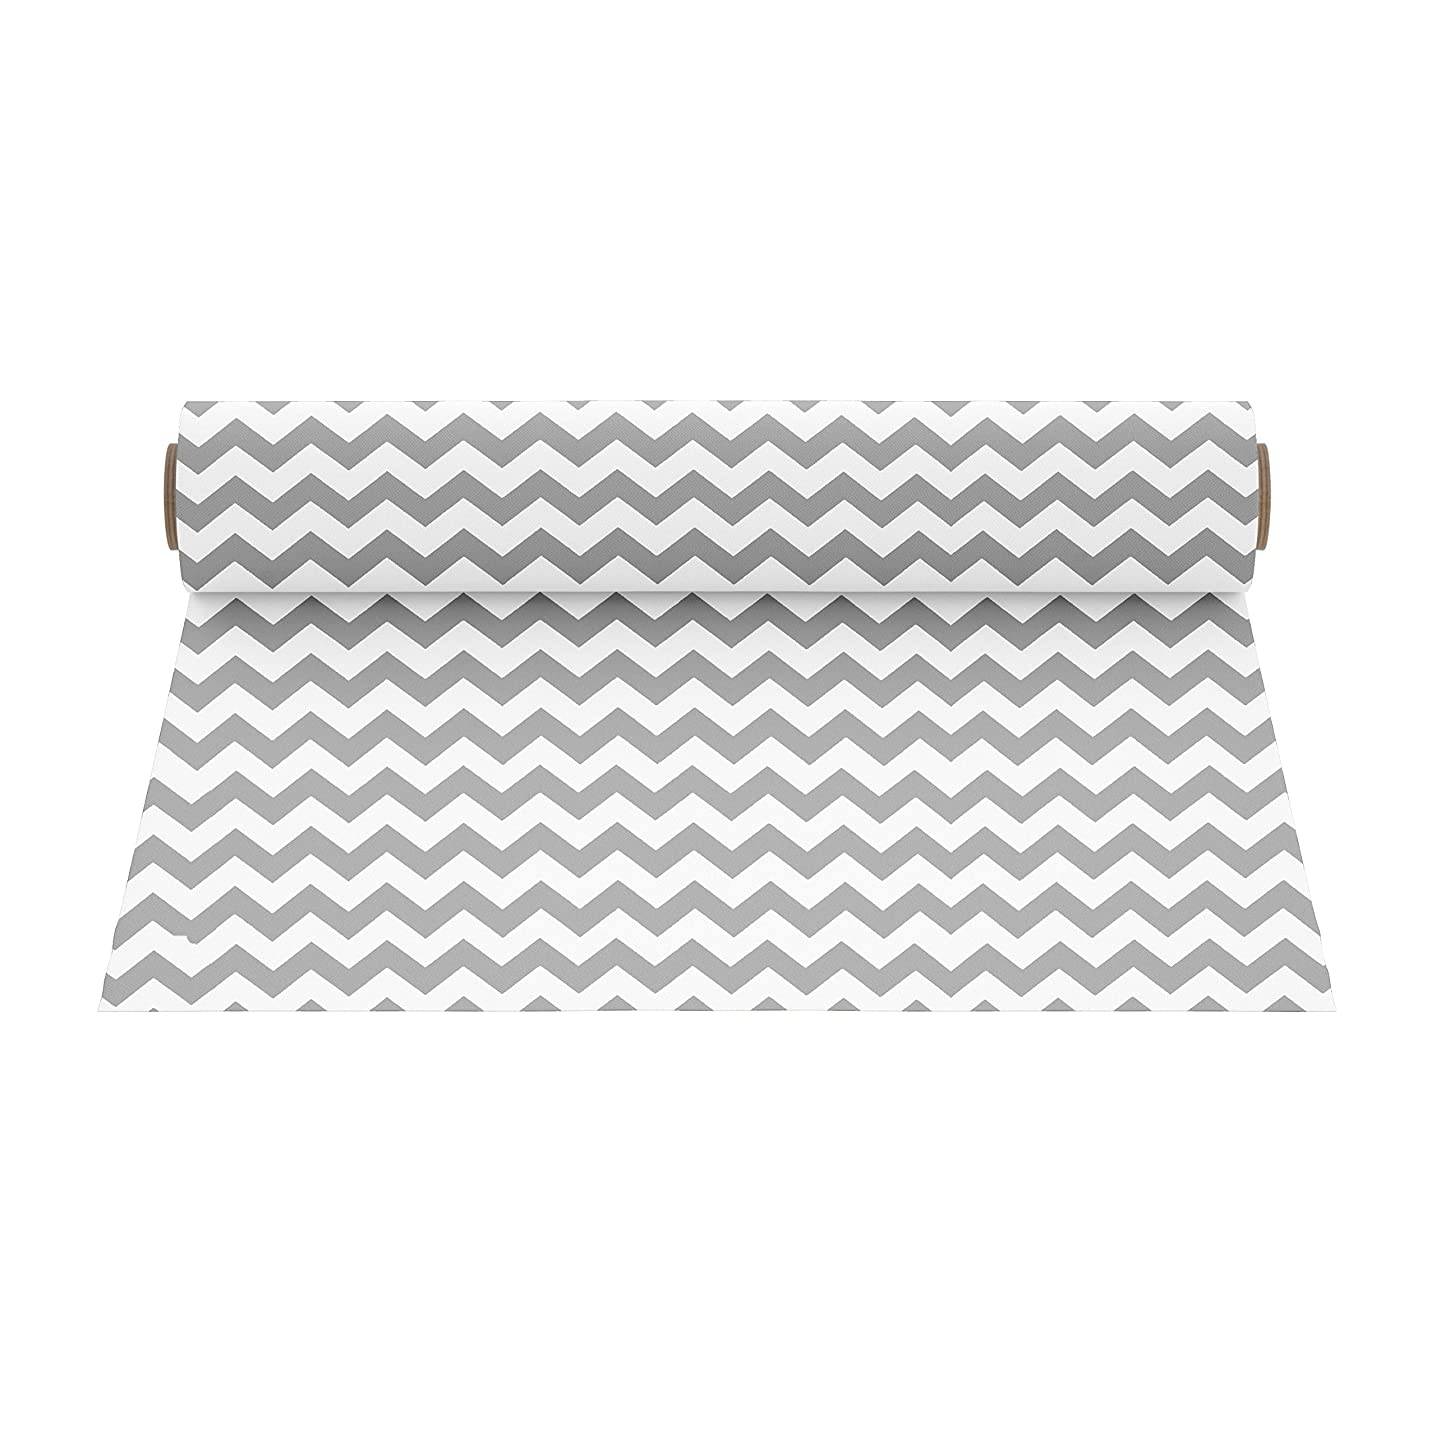 Firefly Craft Patterned Heat Transfer Vinyl for Silhouette and Cricut, 12 Inch by 19.5 Inch, Grey Chevron